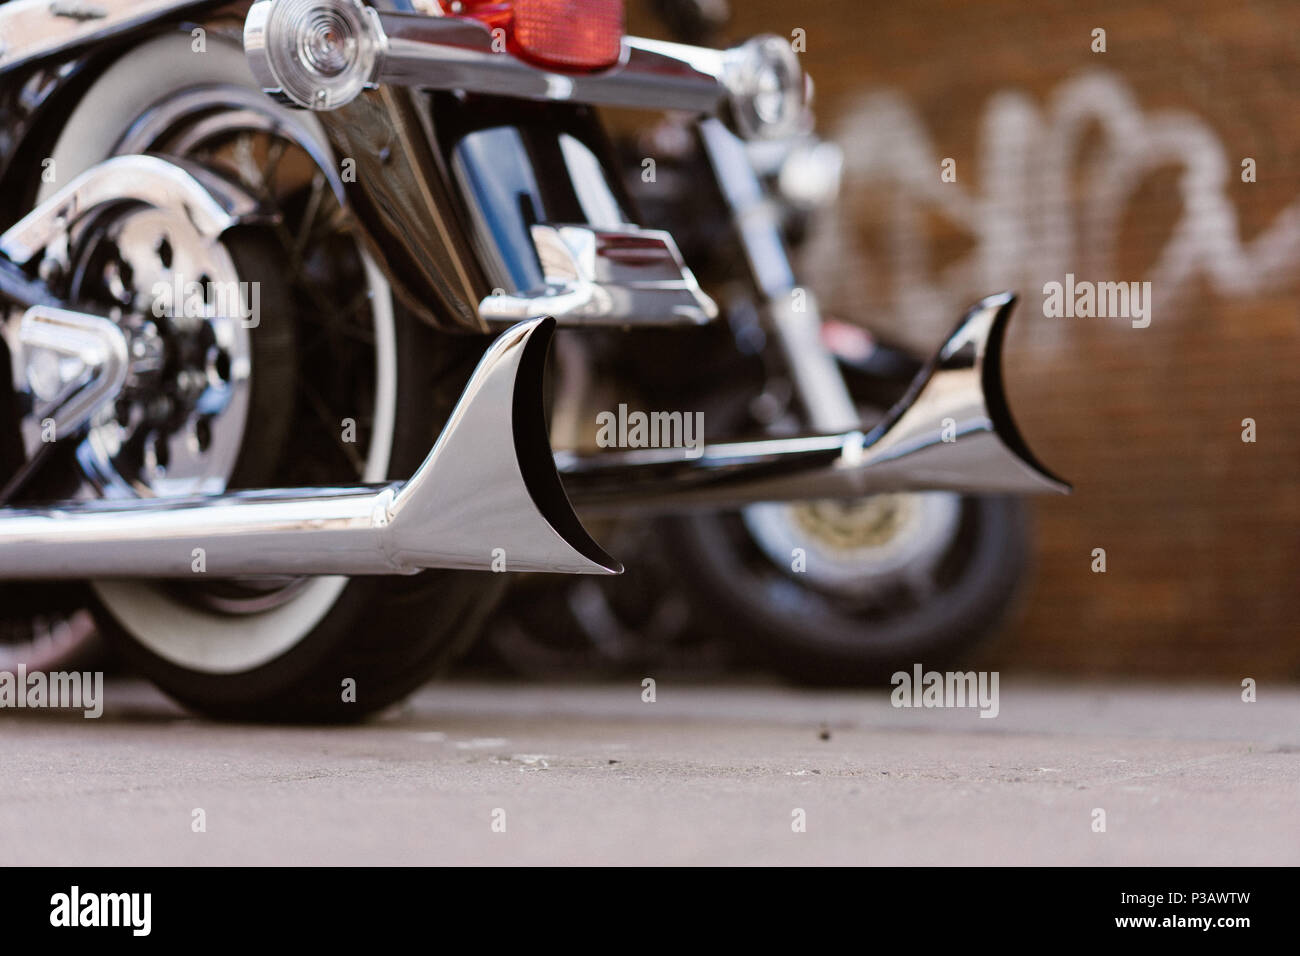 Fishtail Exhaust Pipe High Resolution Stock Photography And Images Alamy